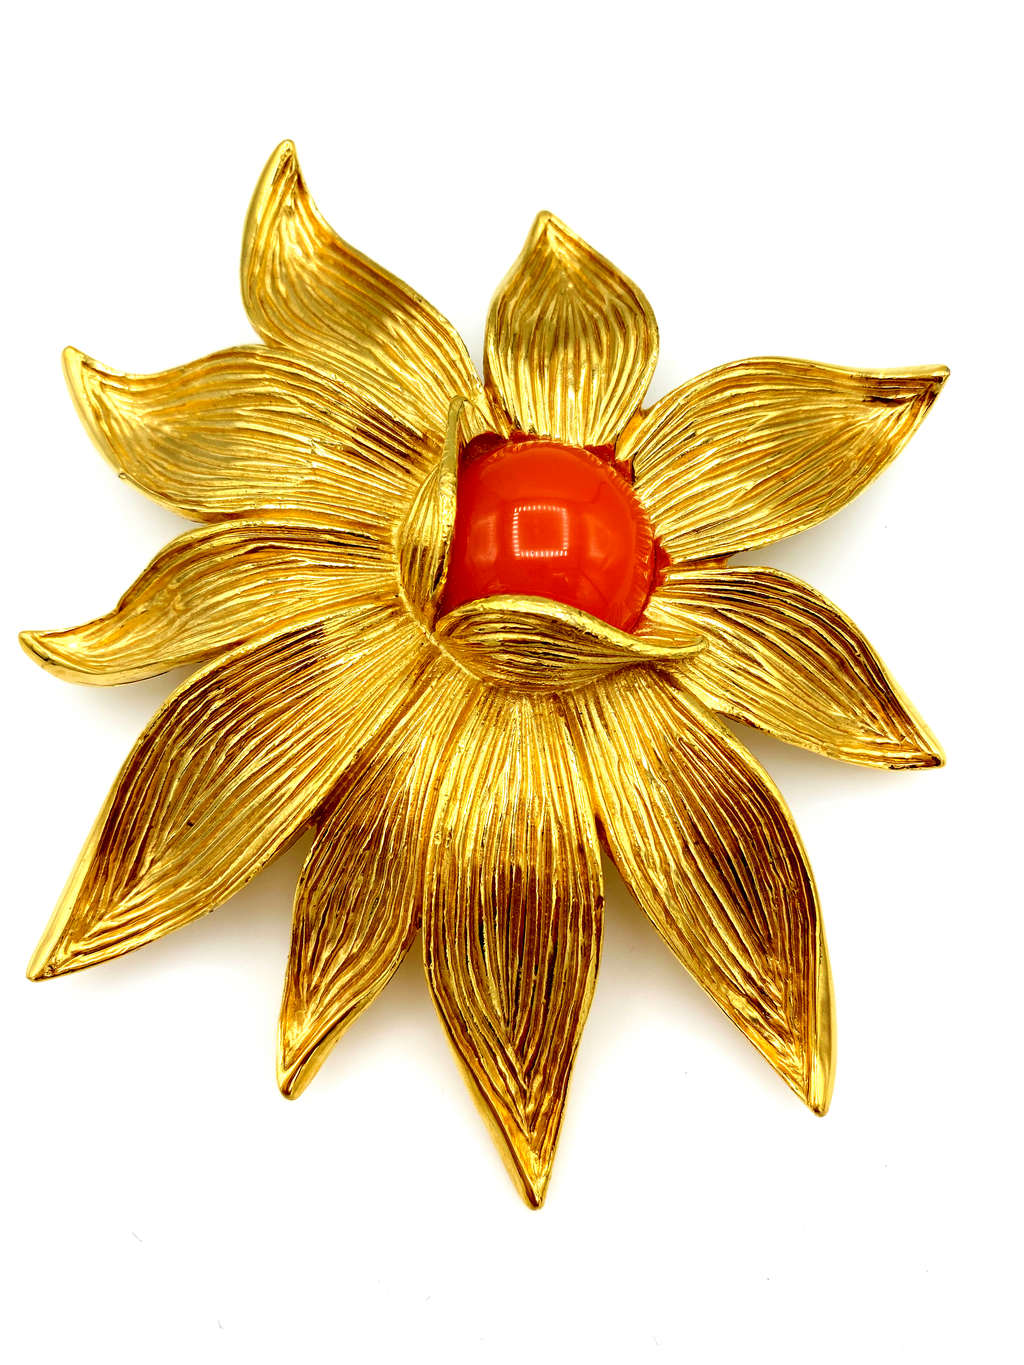 Gold Givenchy Large Orange Coral Cabochon Statement Brooch-Brooches & Pins-Givenchy-[trending designer jewelry]-[givenchy jewelry]-[Sustainable Fashion]